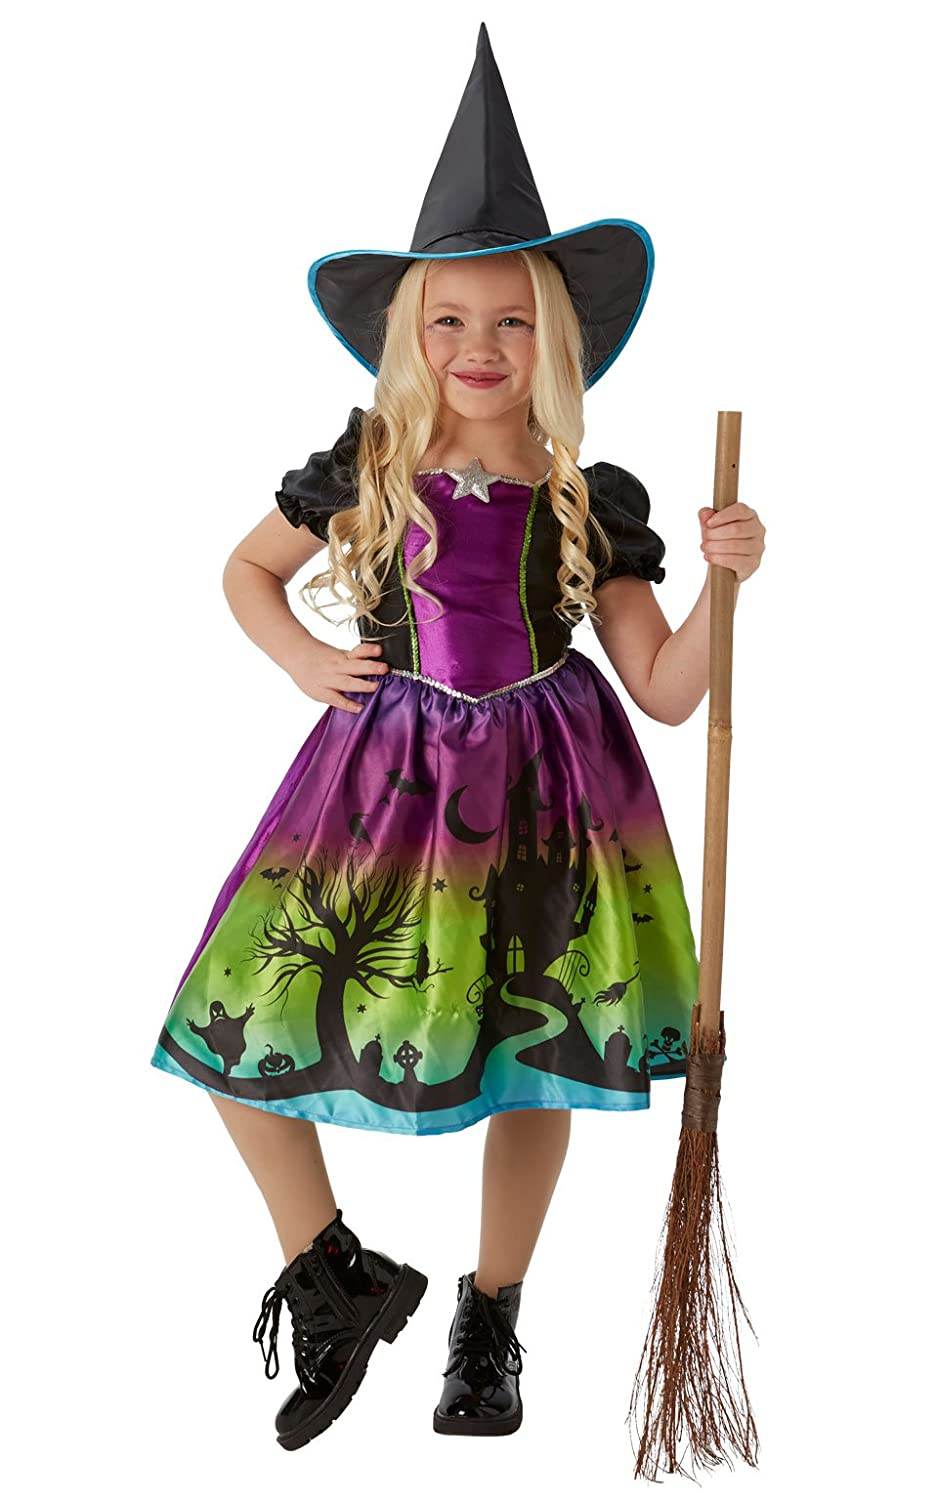 Tights Girls Halloween Fancy Dress Childrens Kids Costume Ombre Wicked Witch